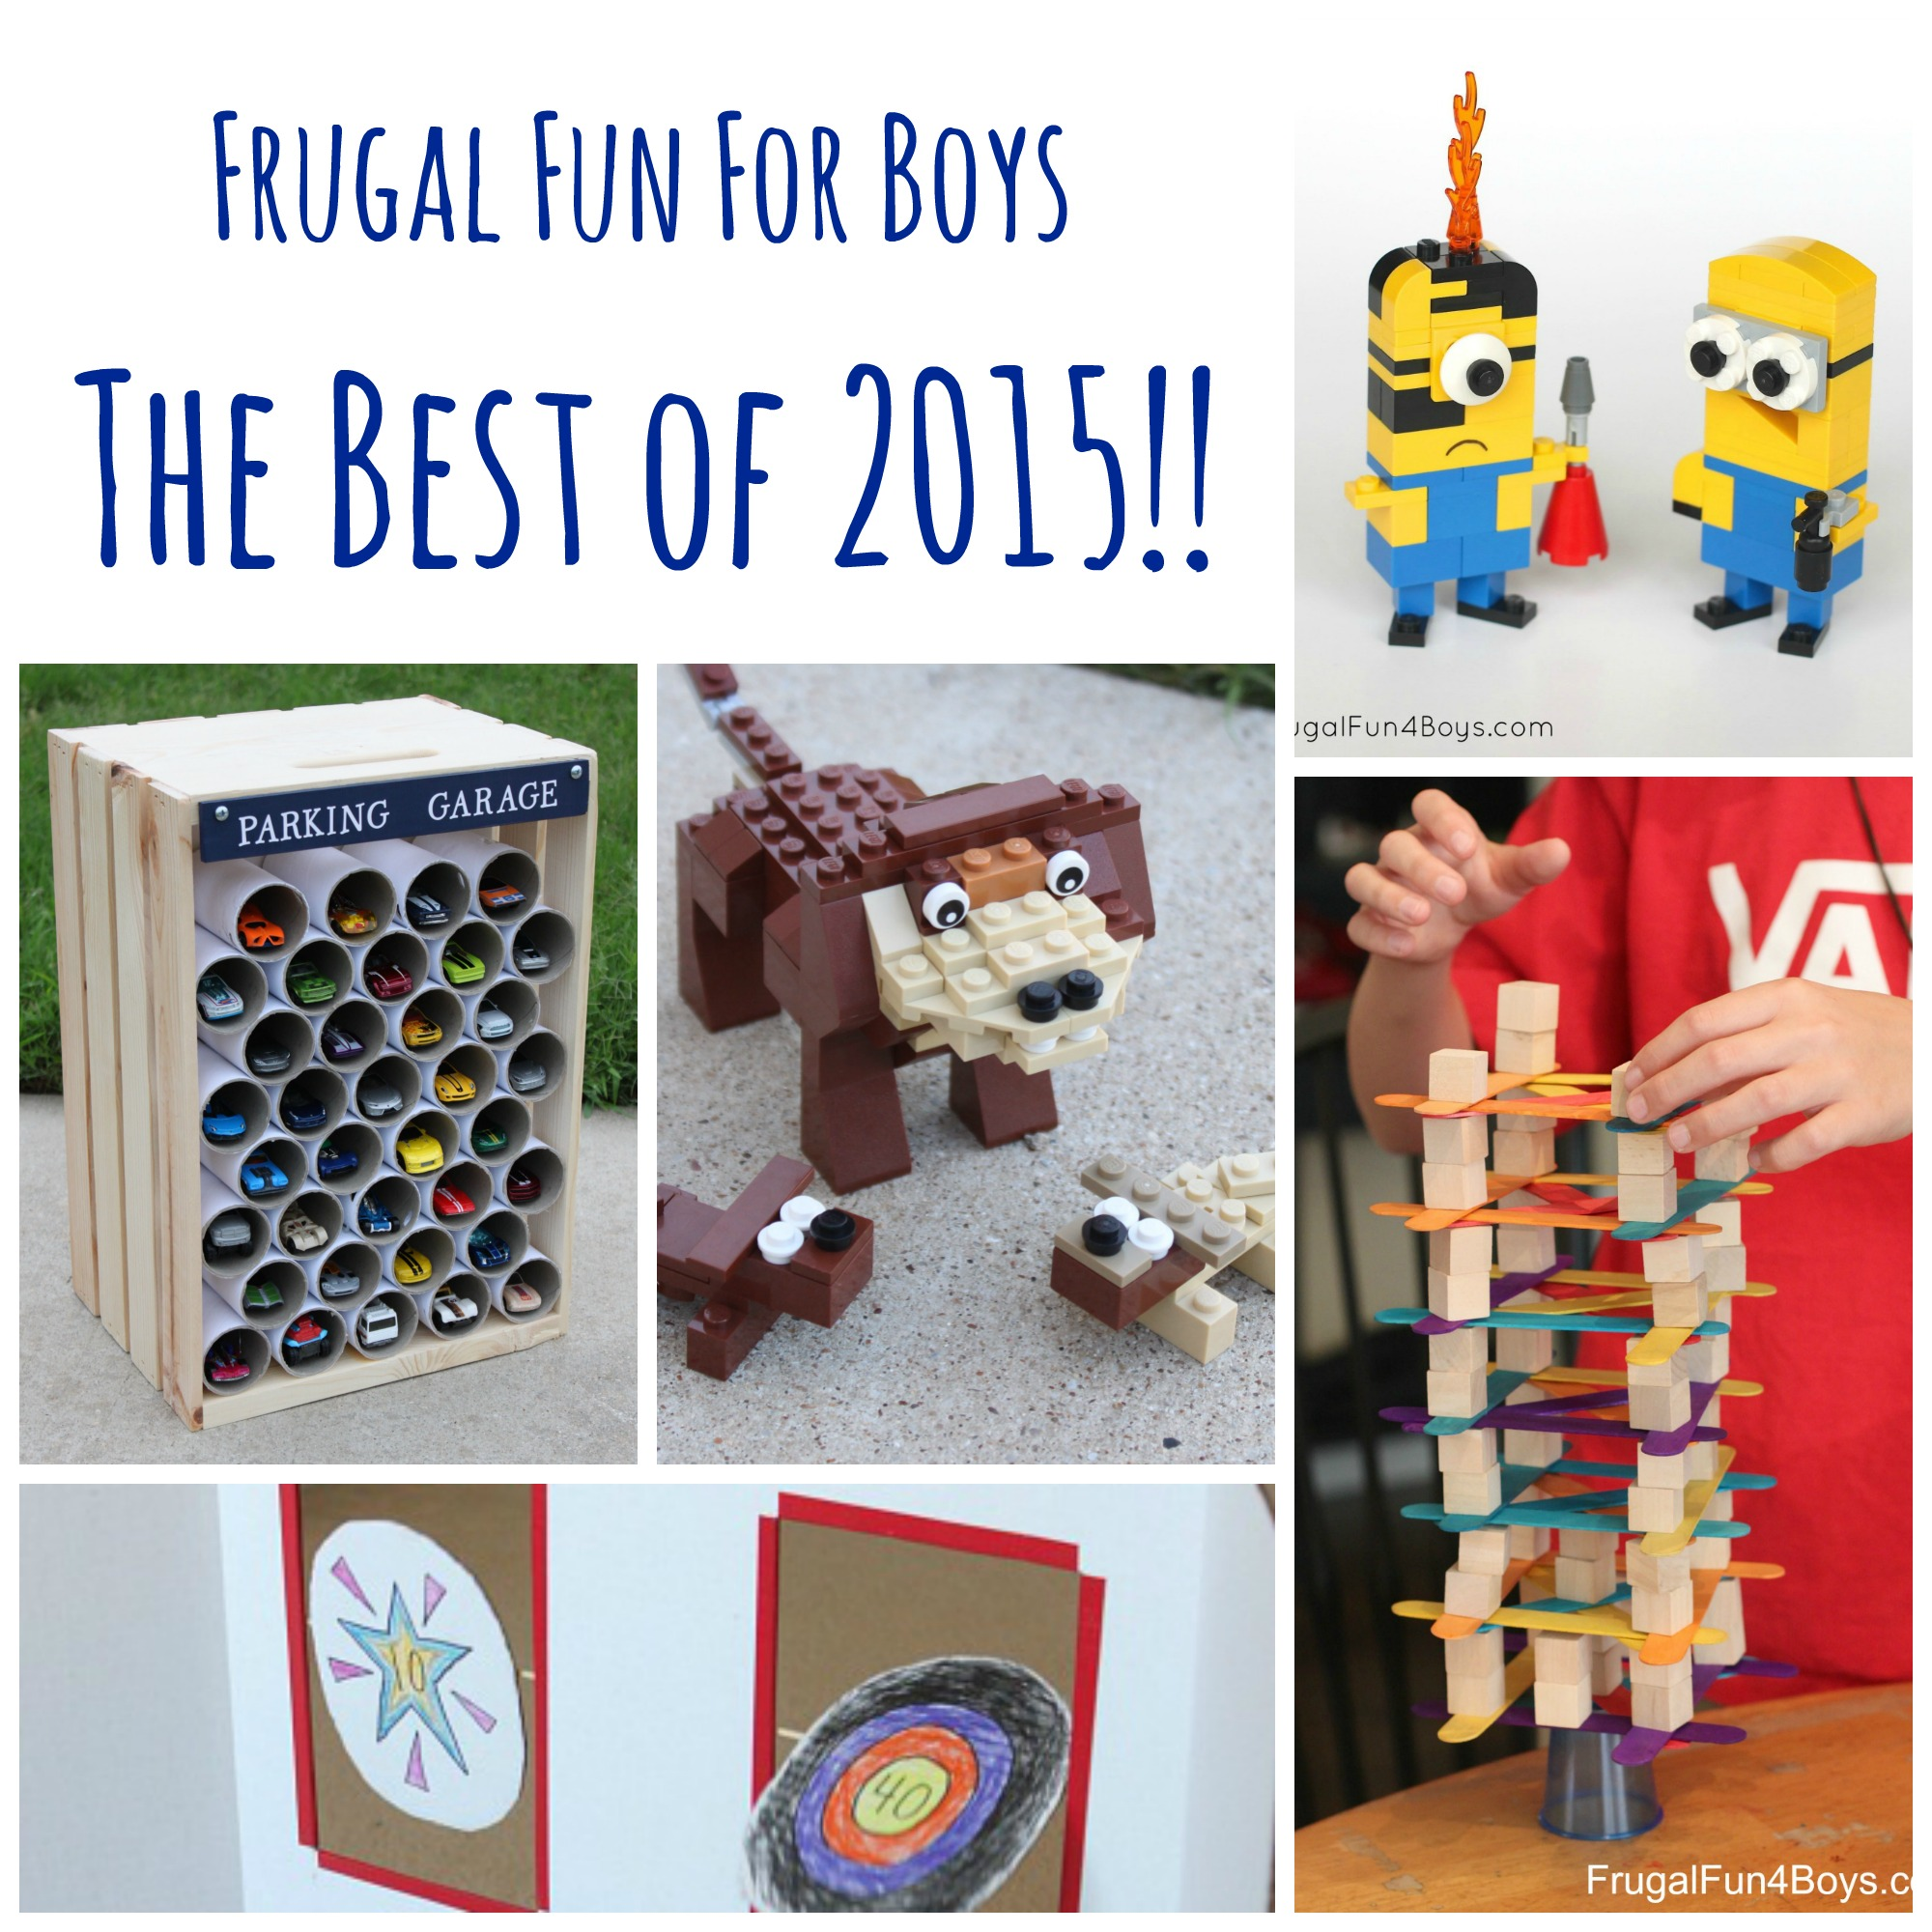 The Top 15 Posts from Frugal Fun for Boys in 2015!